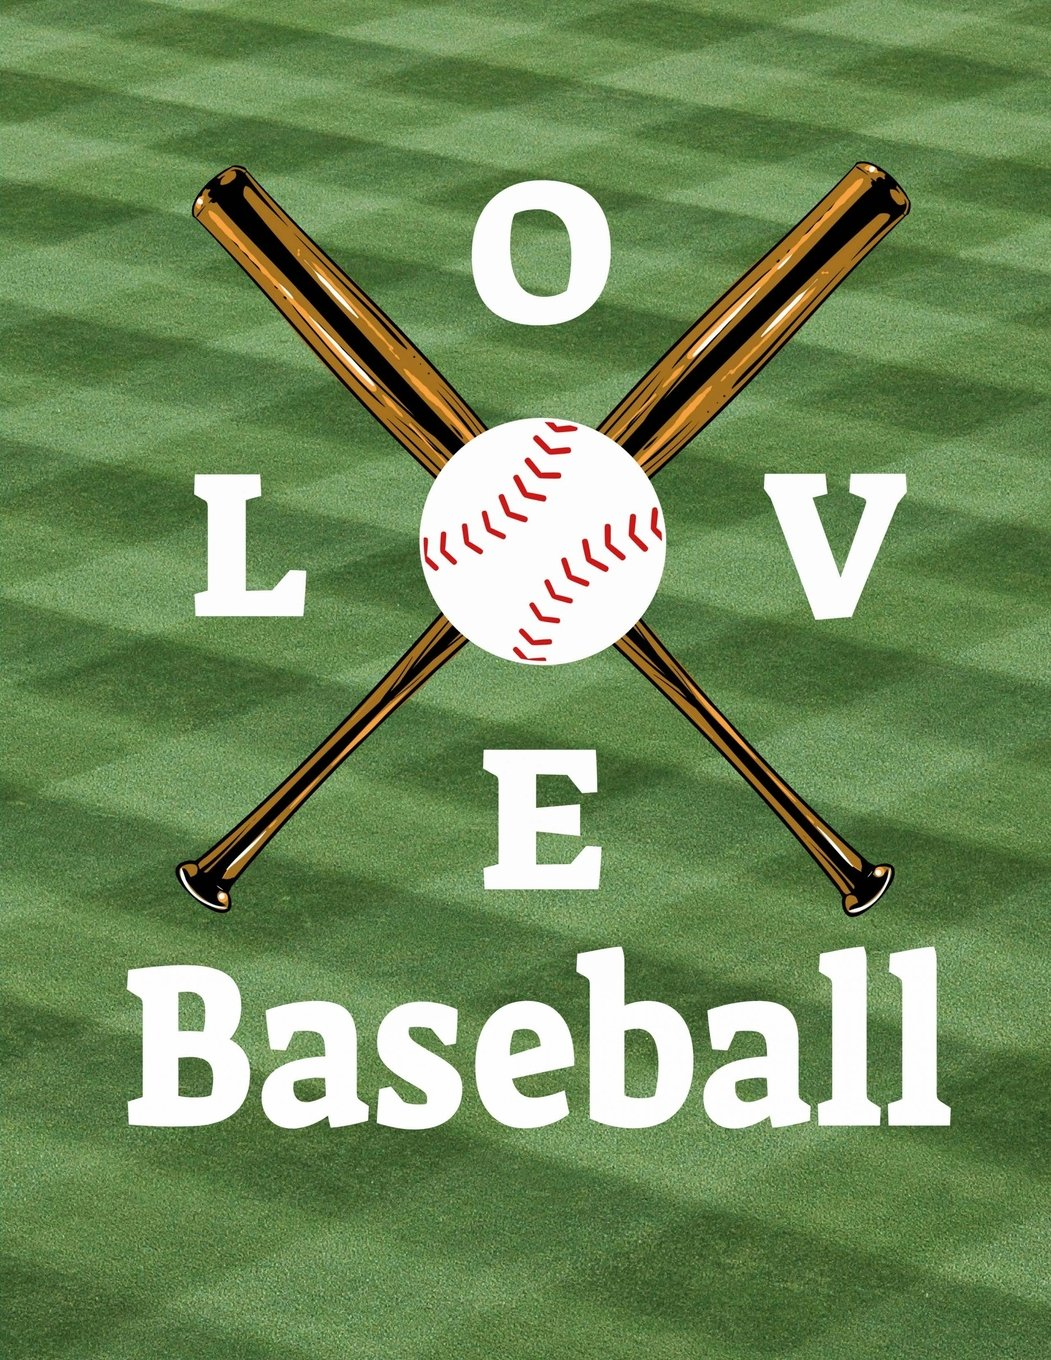 """Baseball I Love Baseball Notebook: Journal for School Teachers Students Offices - Wide Ruled, 200 Pages (8.5"""" x 11"""") PDF"""